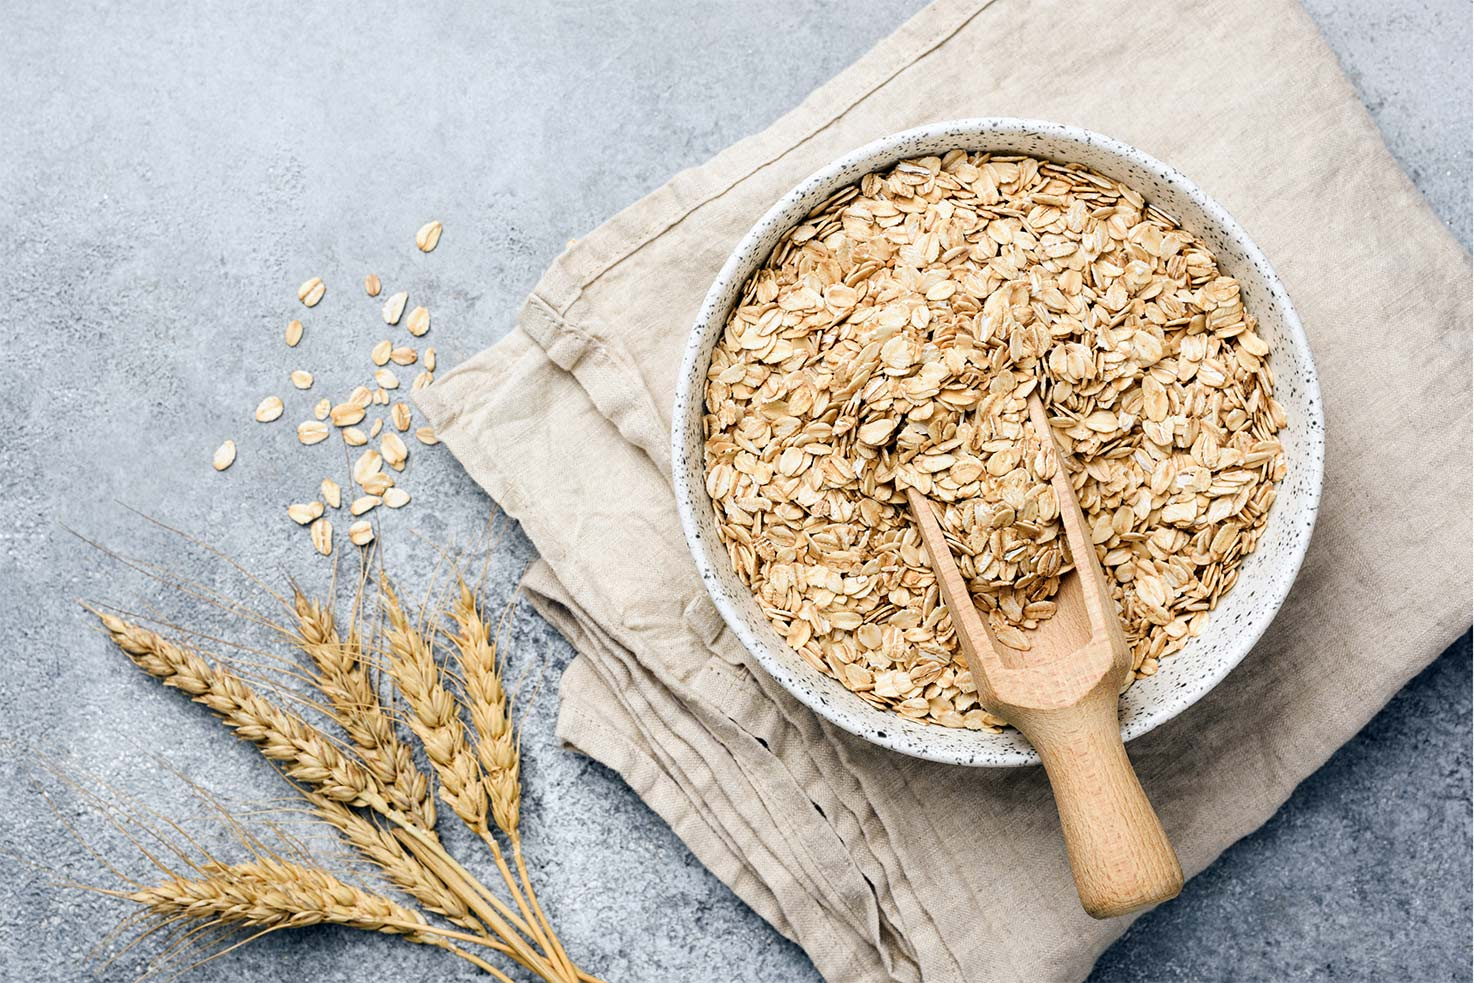 Oat flakes with wooden spoon are in the bowl that is on the table | Hurry The Food Up